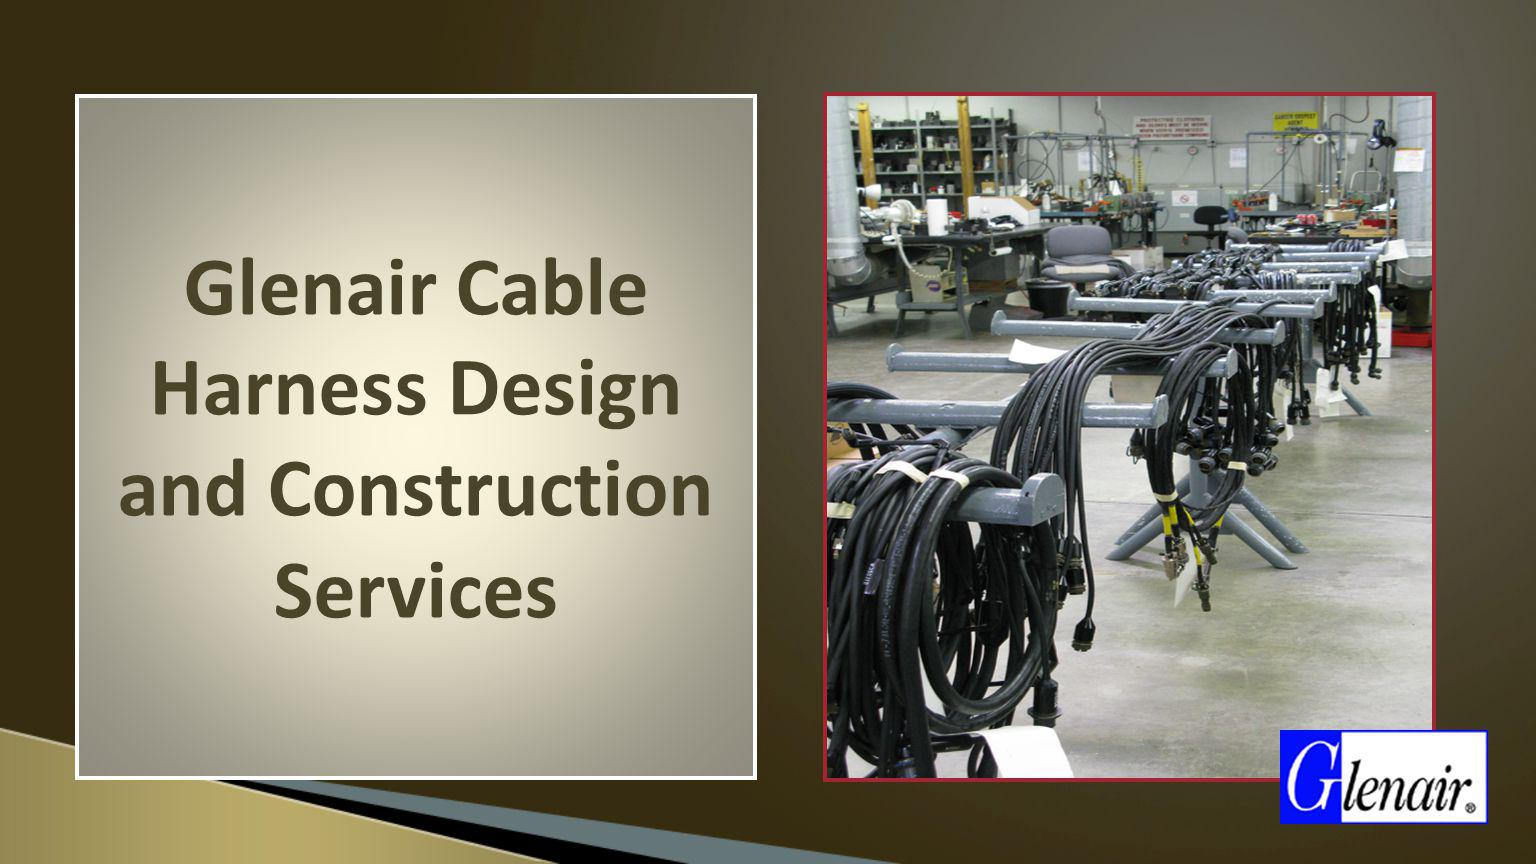 Glenair Cable Harness Design and Construction Services